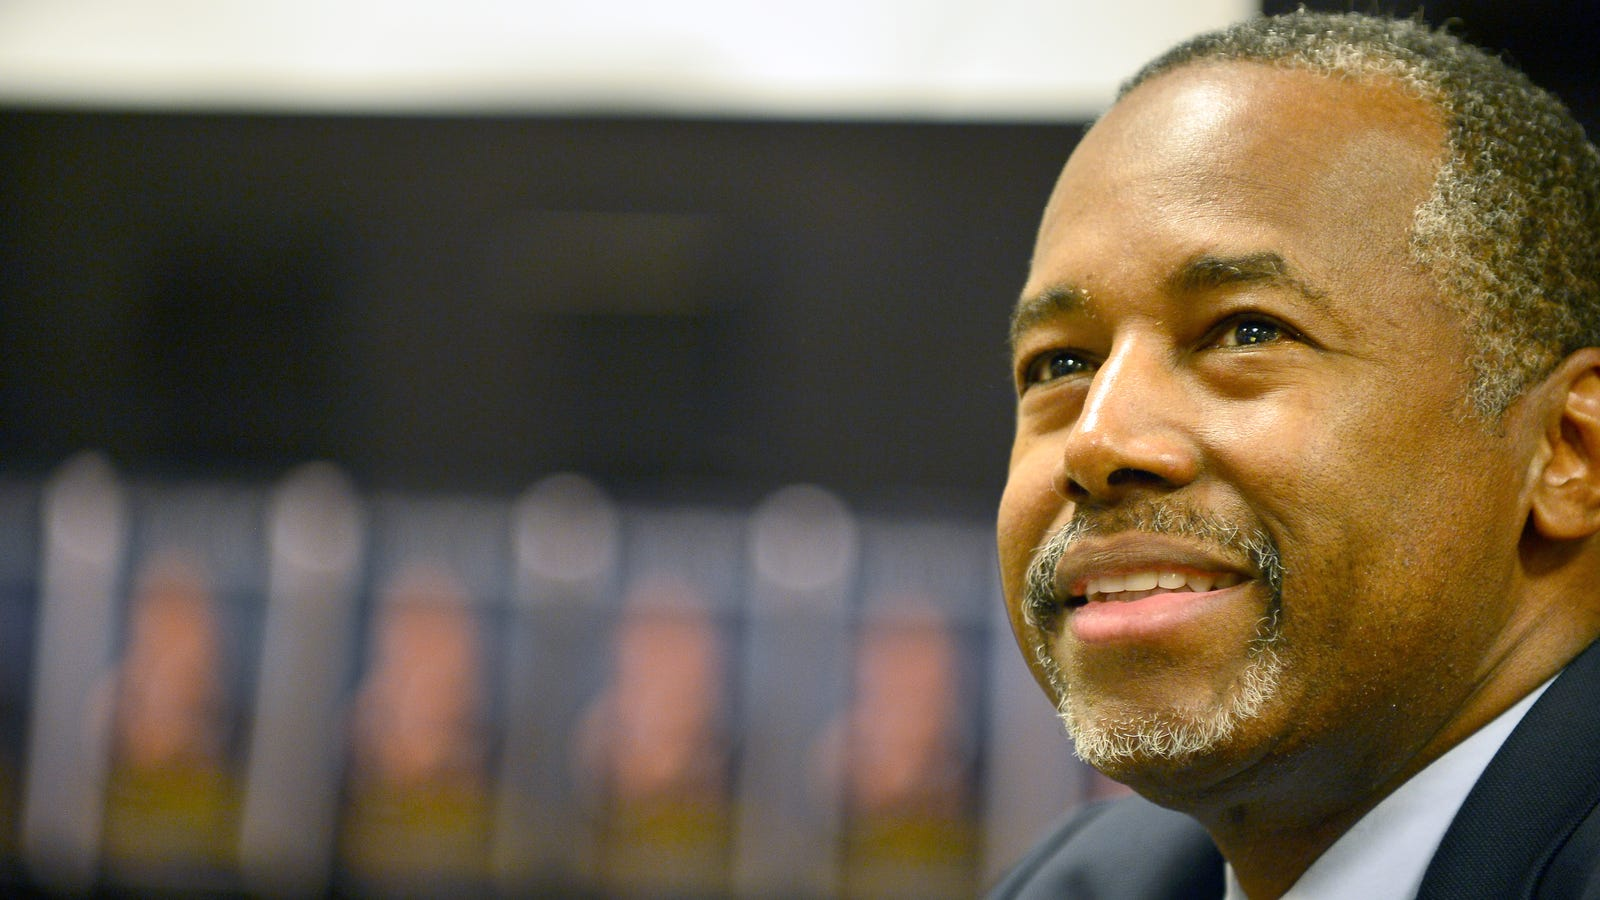 ben carson true story Politico fabricates story about ben carson and west point politico fabricates story about ben carson and west point home  if this is true, this is a huge deal.